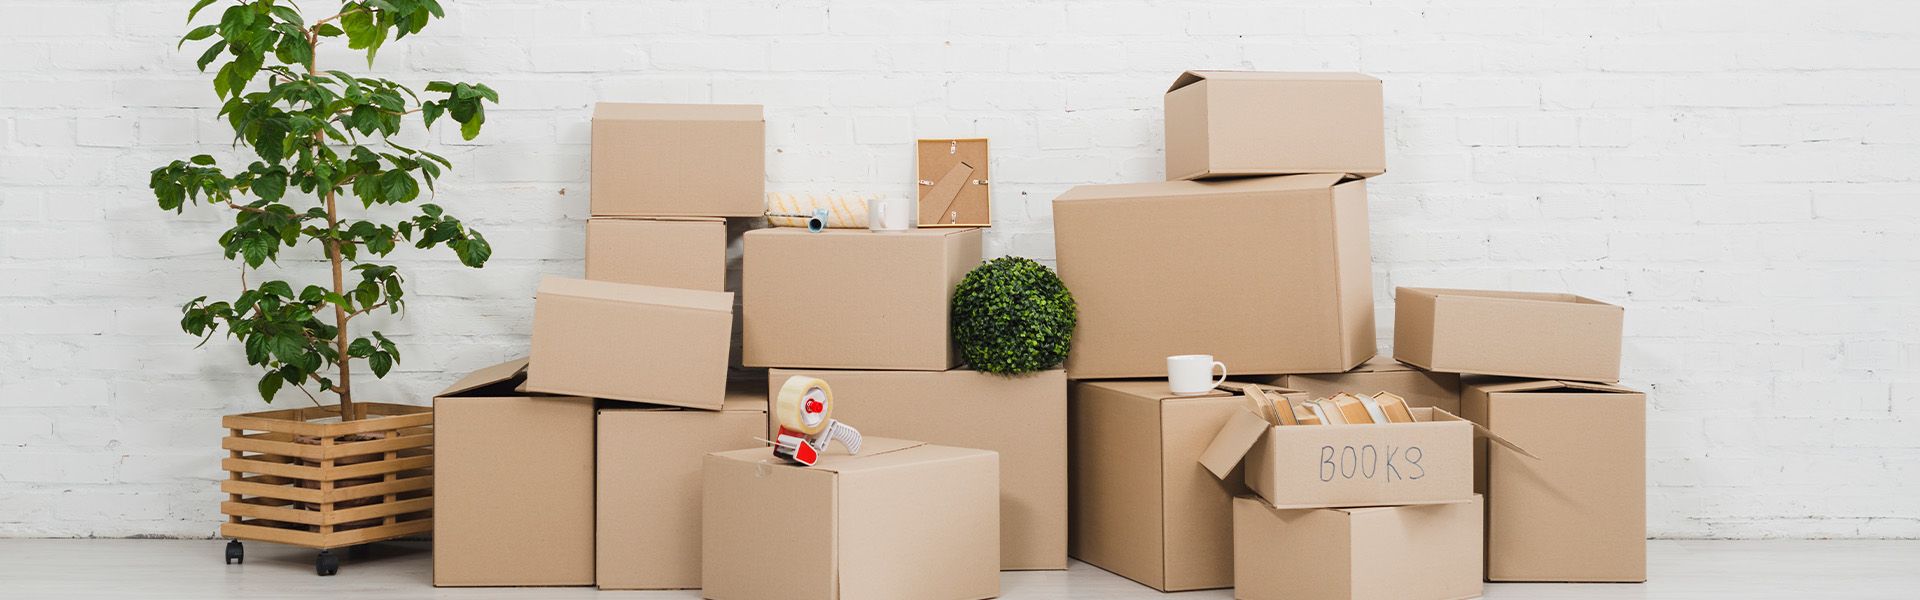 Selling-Your-Home-To-Relocate